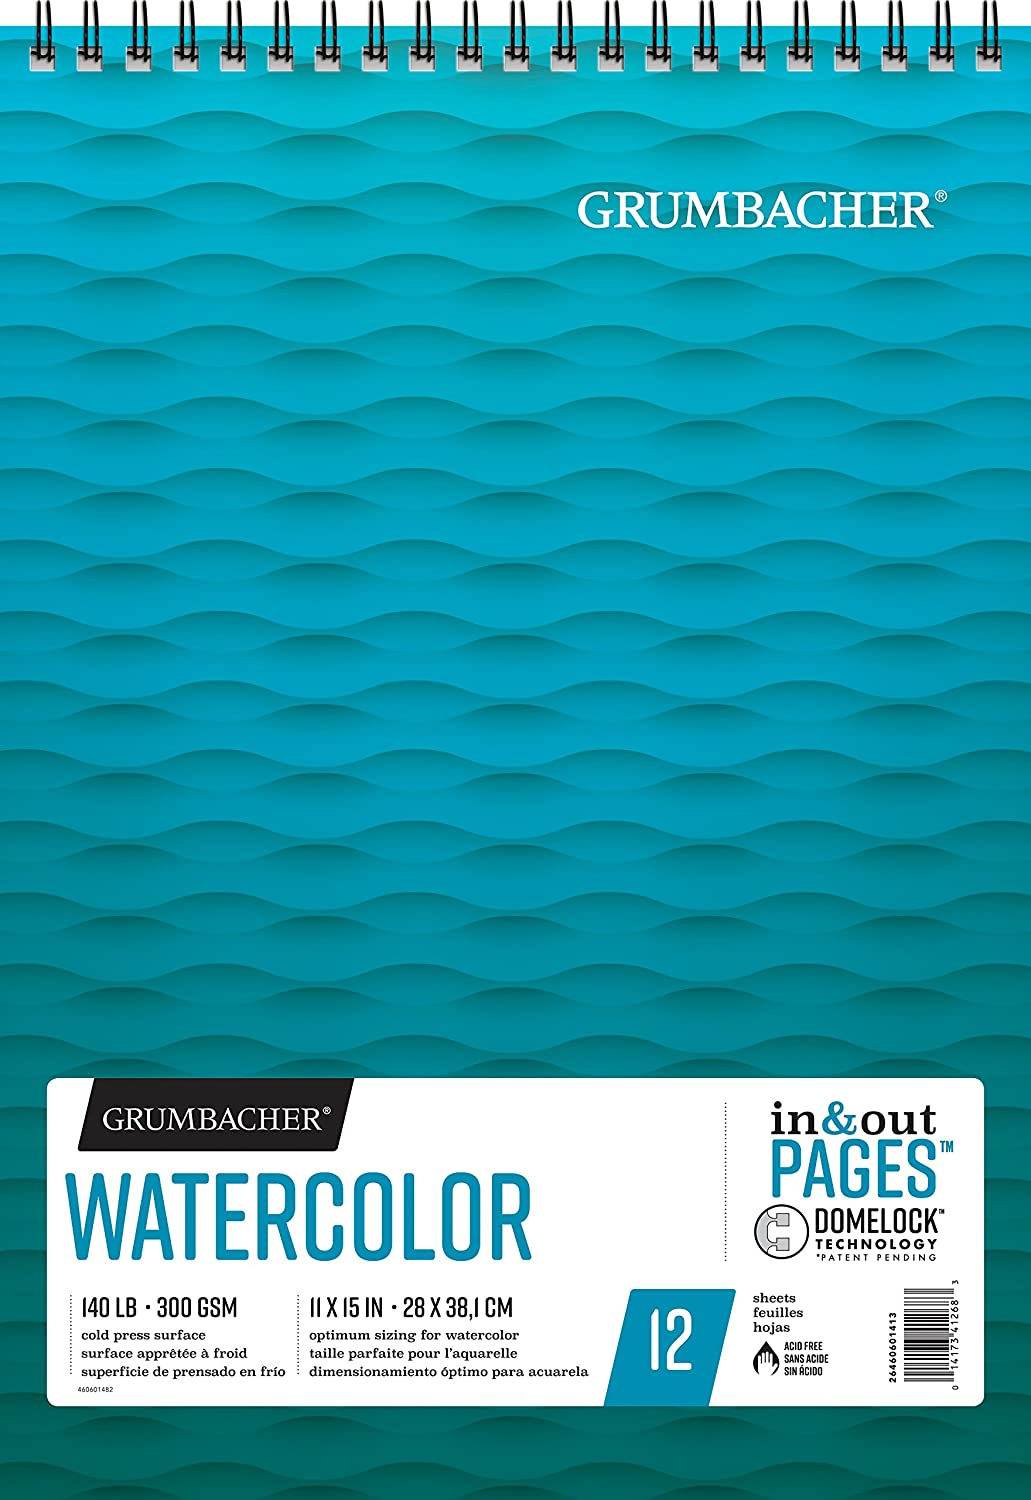 Grumbacher Watercolor Paper Pad, 140 lb. / 300 GSM, 8 x 8 inches, Fold Over Construction, 15 White Cold-Press Sheets/Pad, 1 Each, 26460600711 Chartpak Inc.